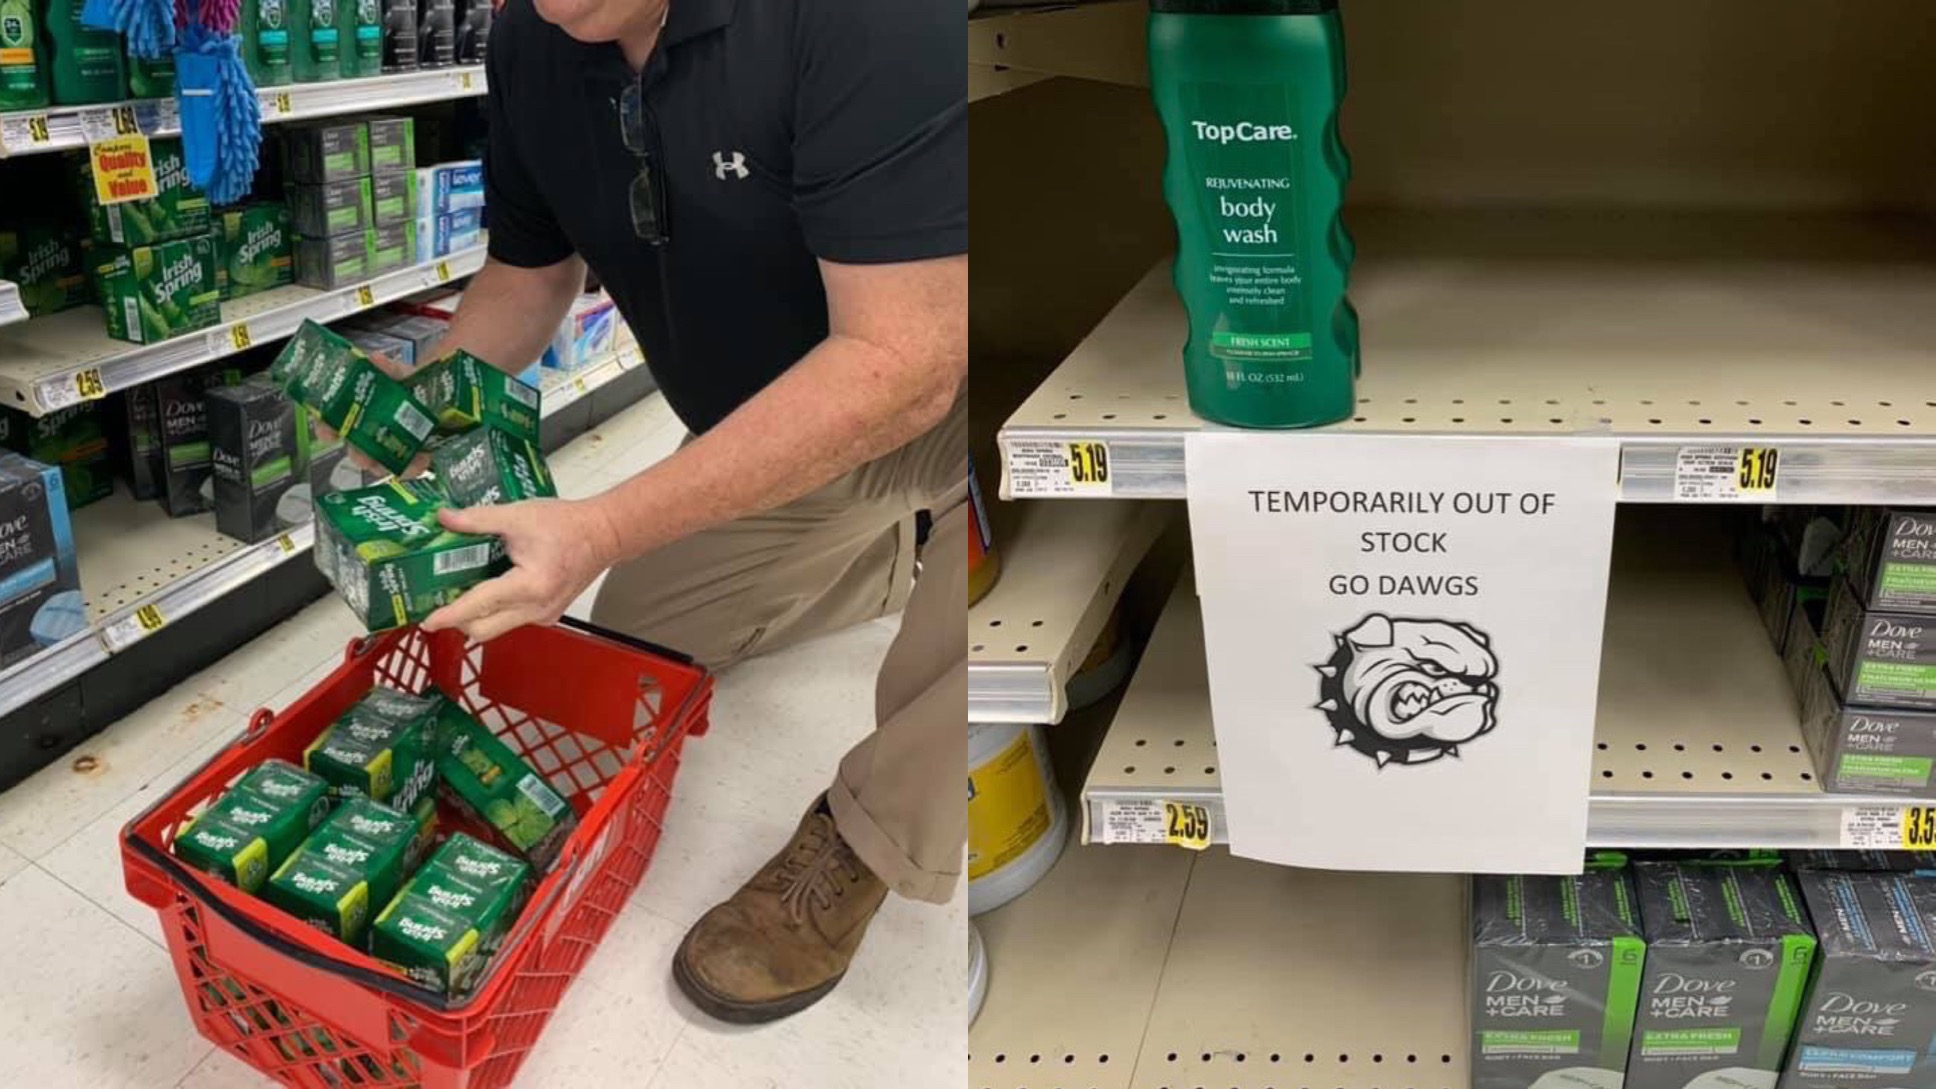 Grocery Store Near University of Georgia Pulls All Irish Soap Ahead Of Game vs Notre Dame (PIC)